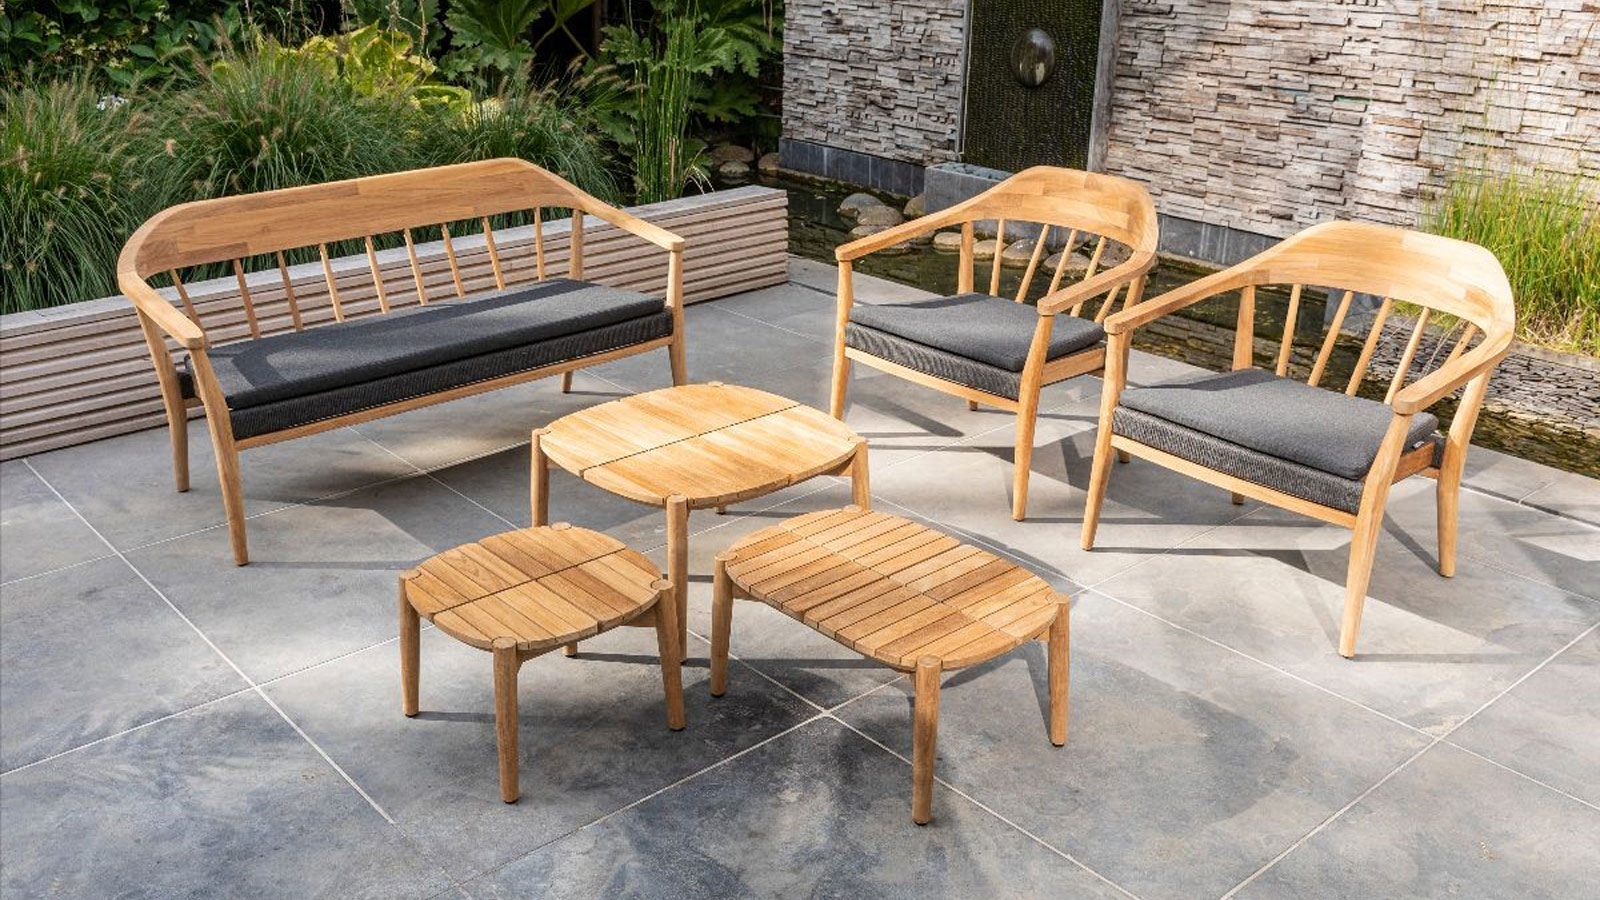 OASIQ Copenhagen outdoor lounge furniture